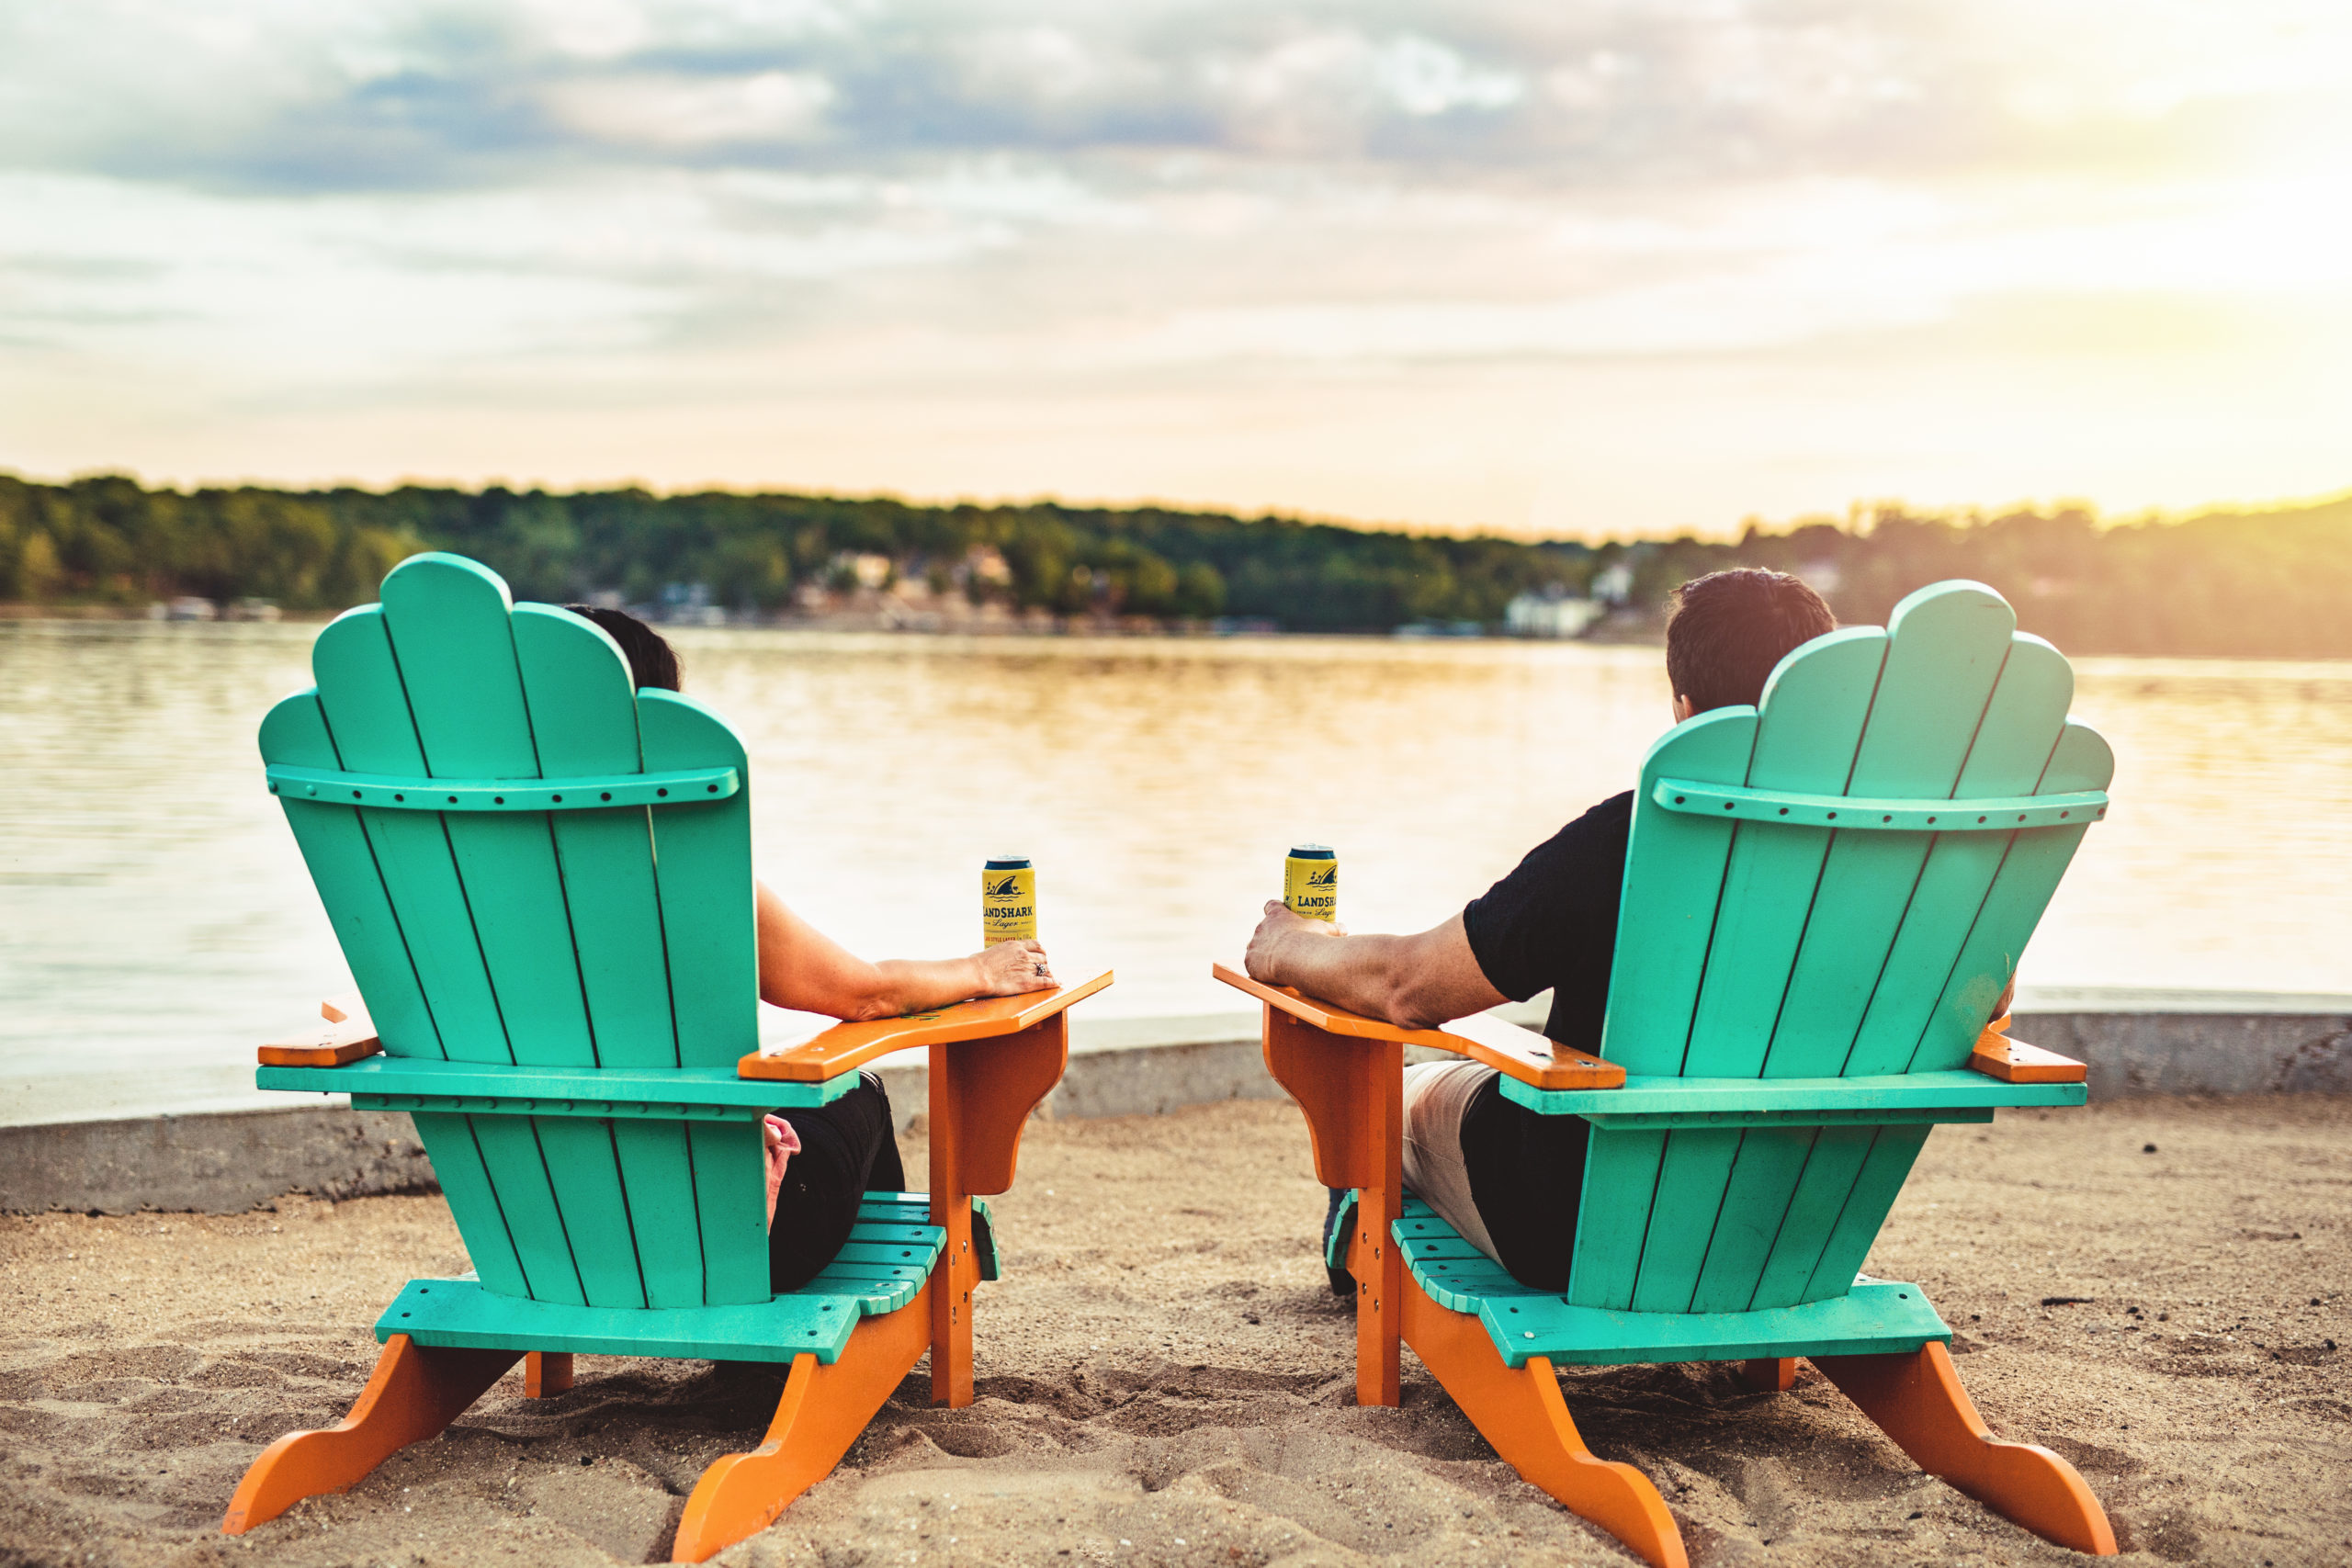 Couple in Chairs on Sand Beach scaled